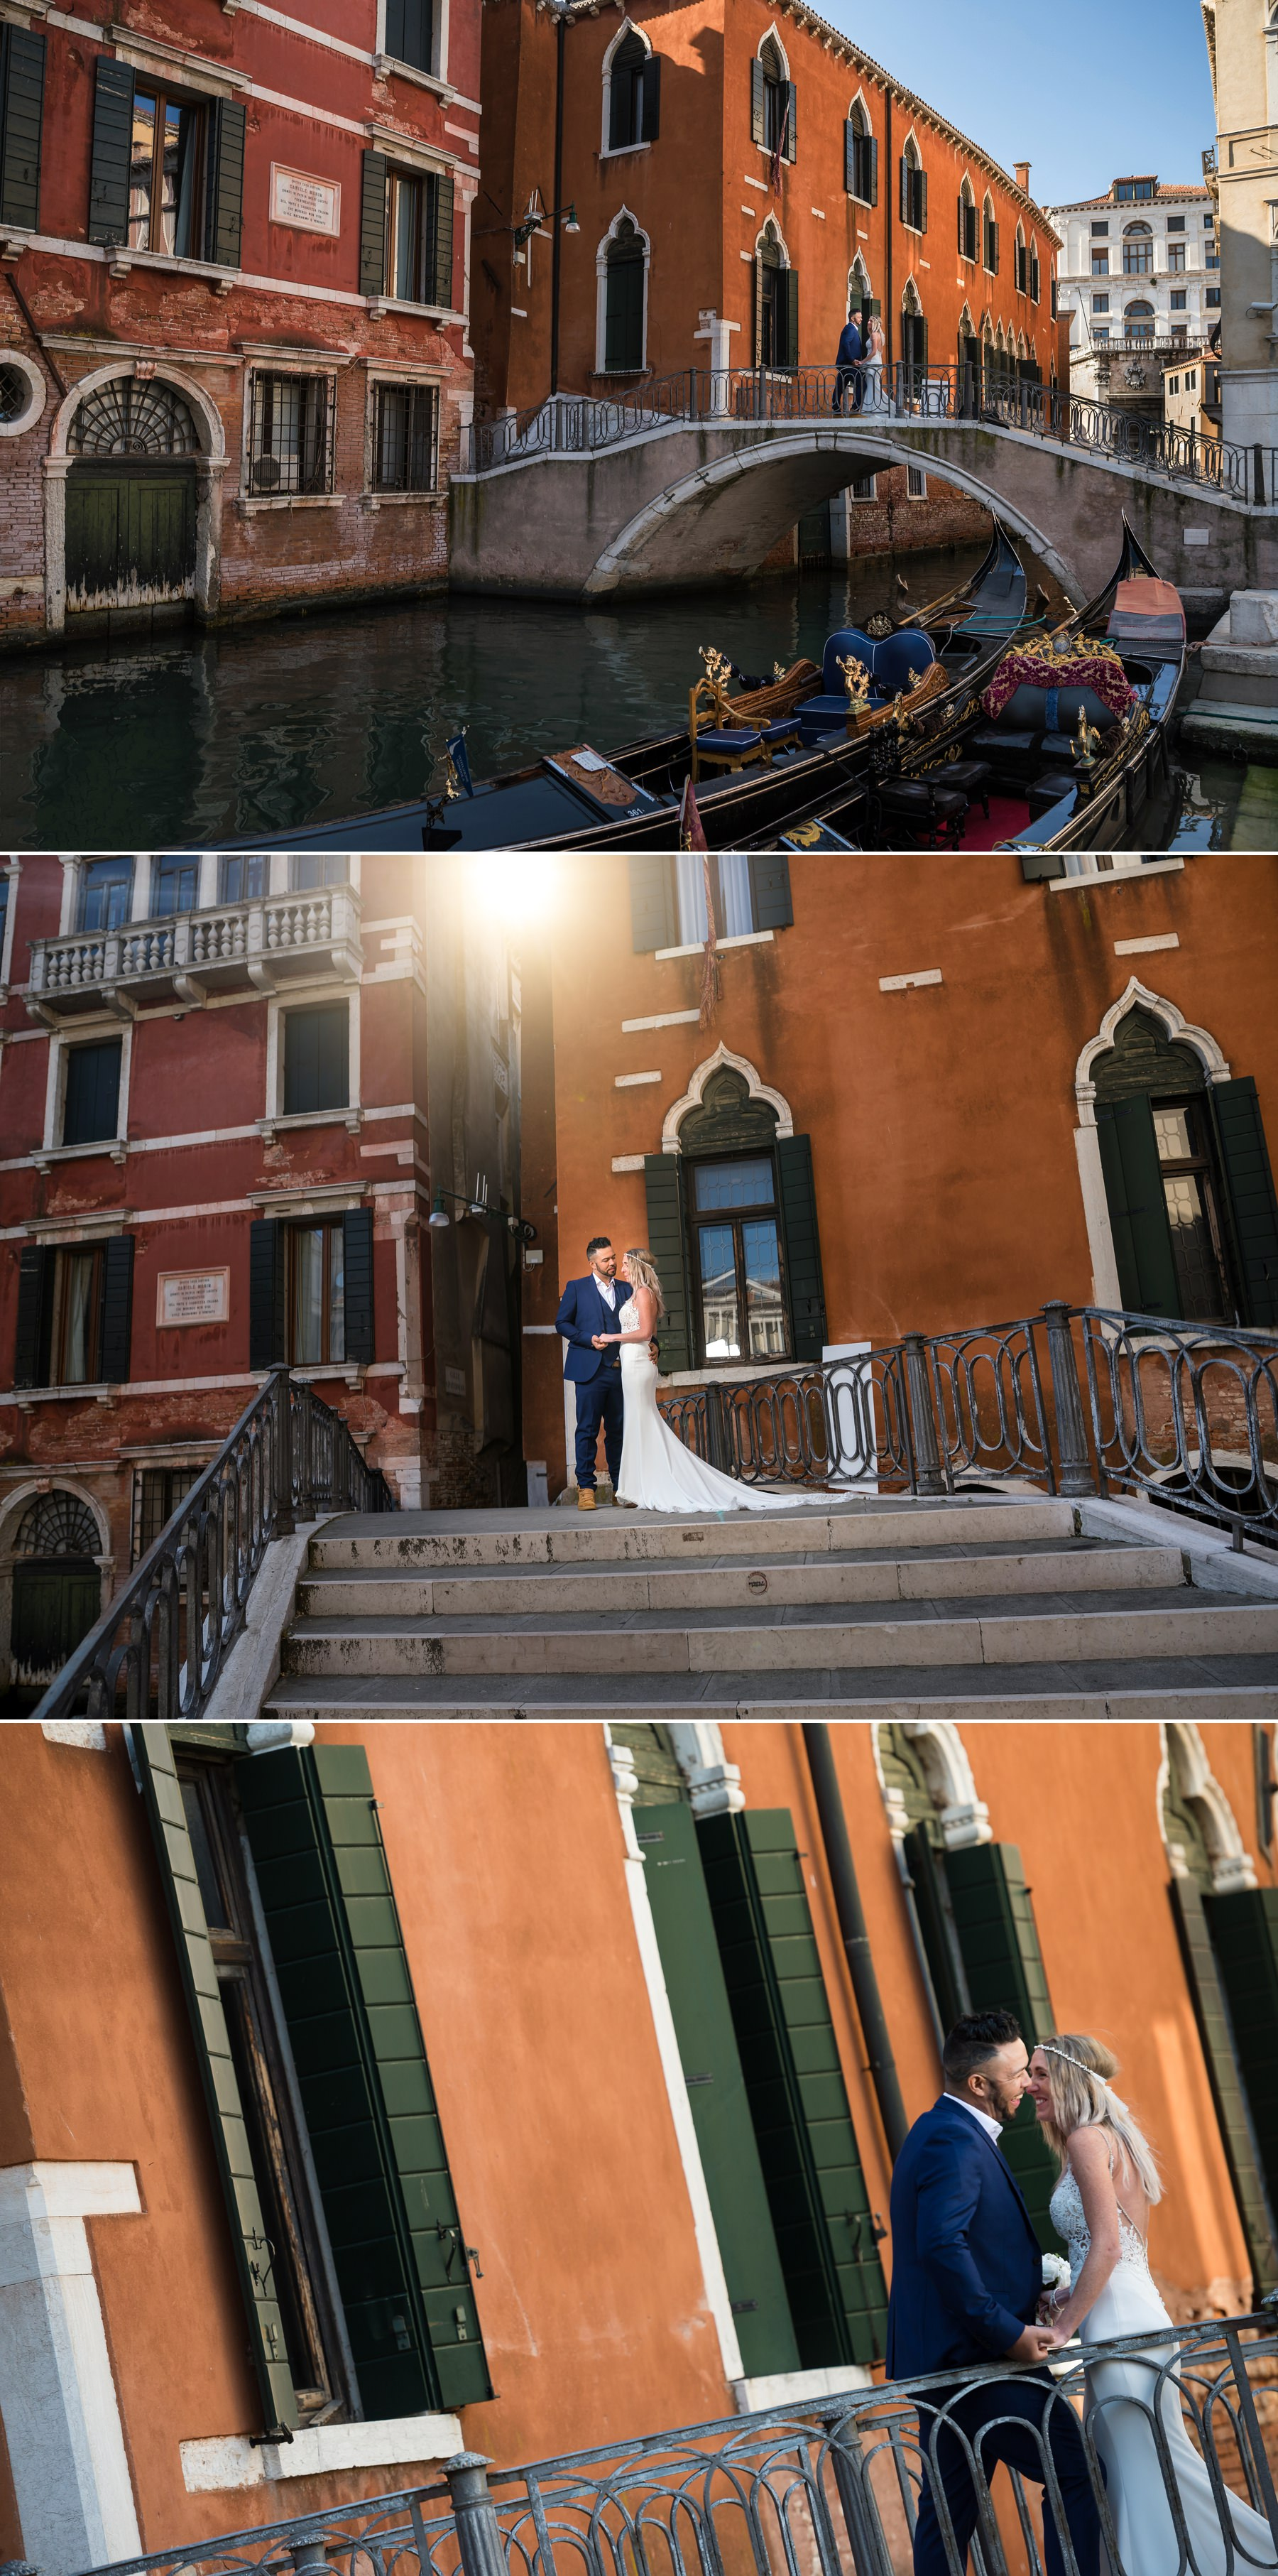 Palazzo Cavalli Venice bride and groom together with gondolas in front